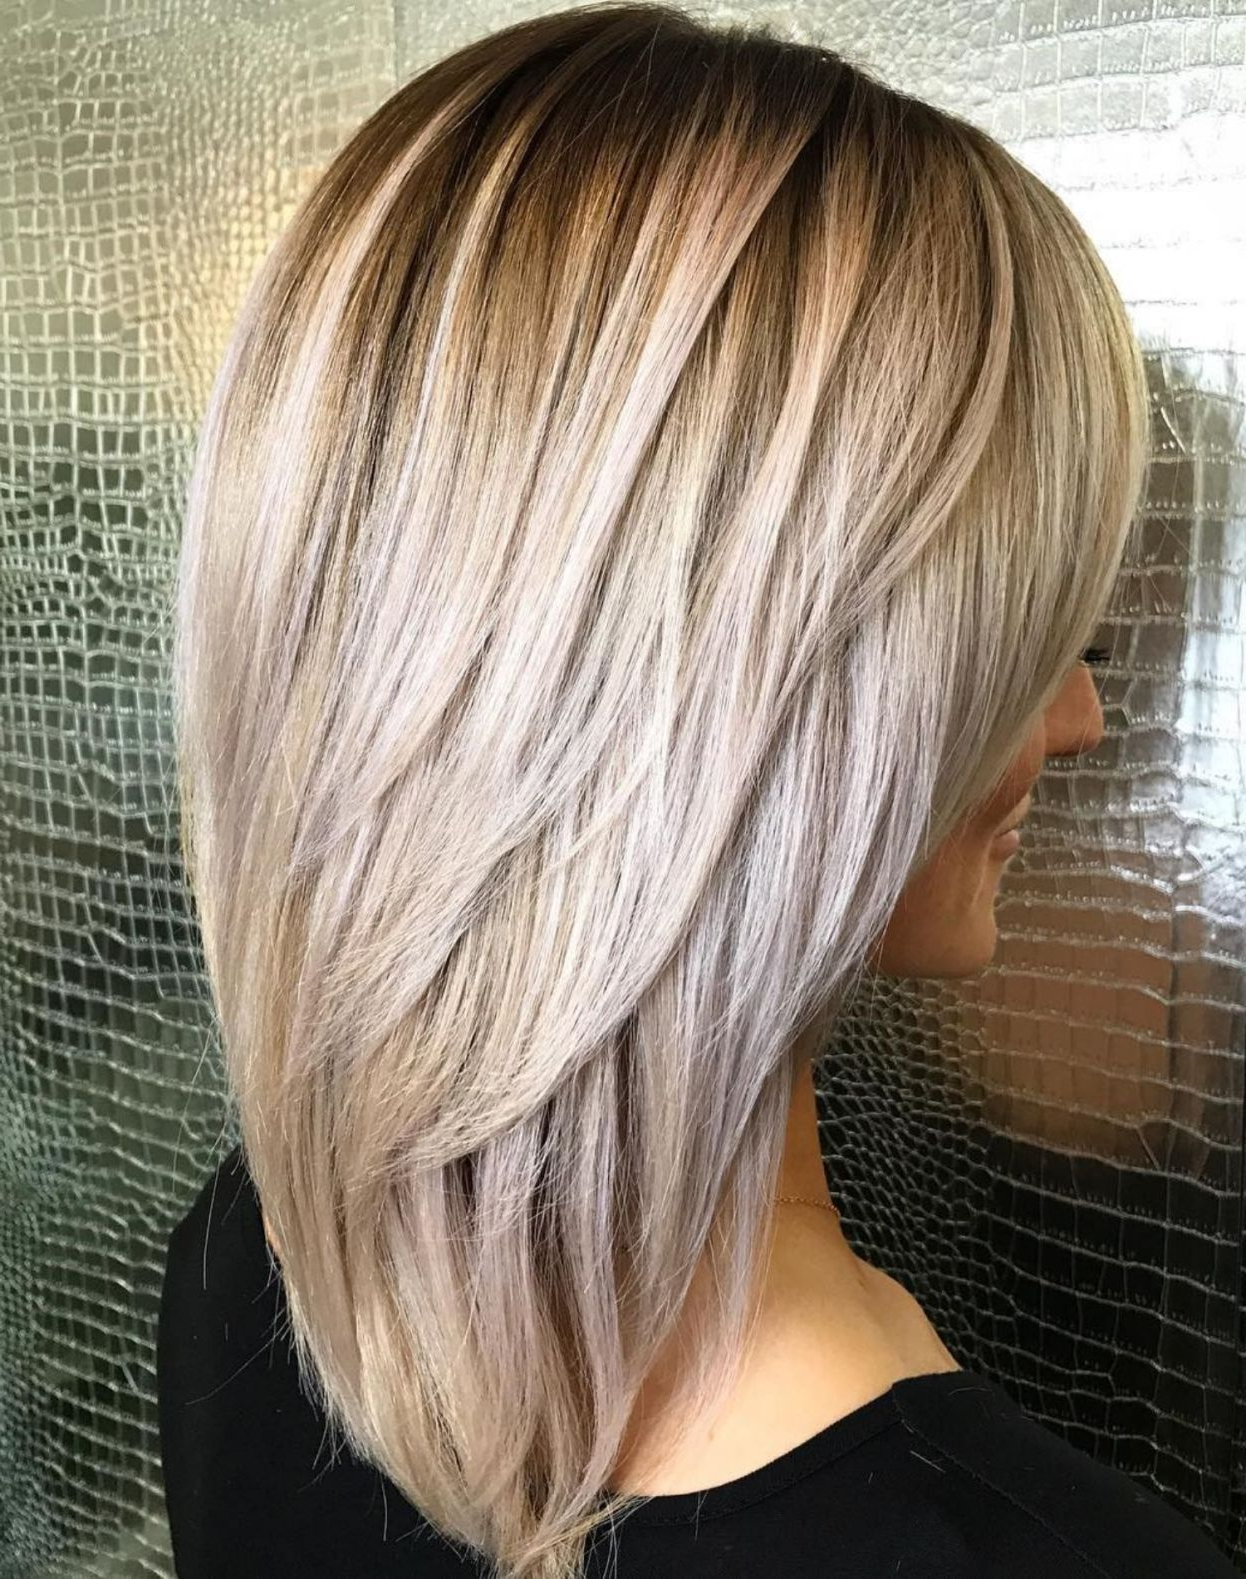 60 Most Beneficial Haircuts For Thick Hair Of Any Length In 2018 For Short Bob Hairstyles With Long V Cut Layers (View 2 of 20)